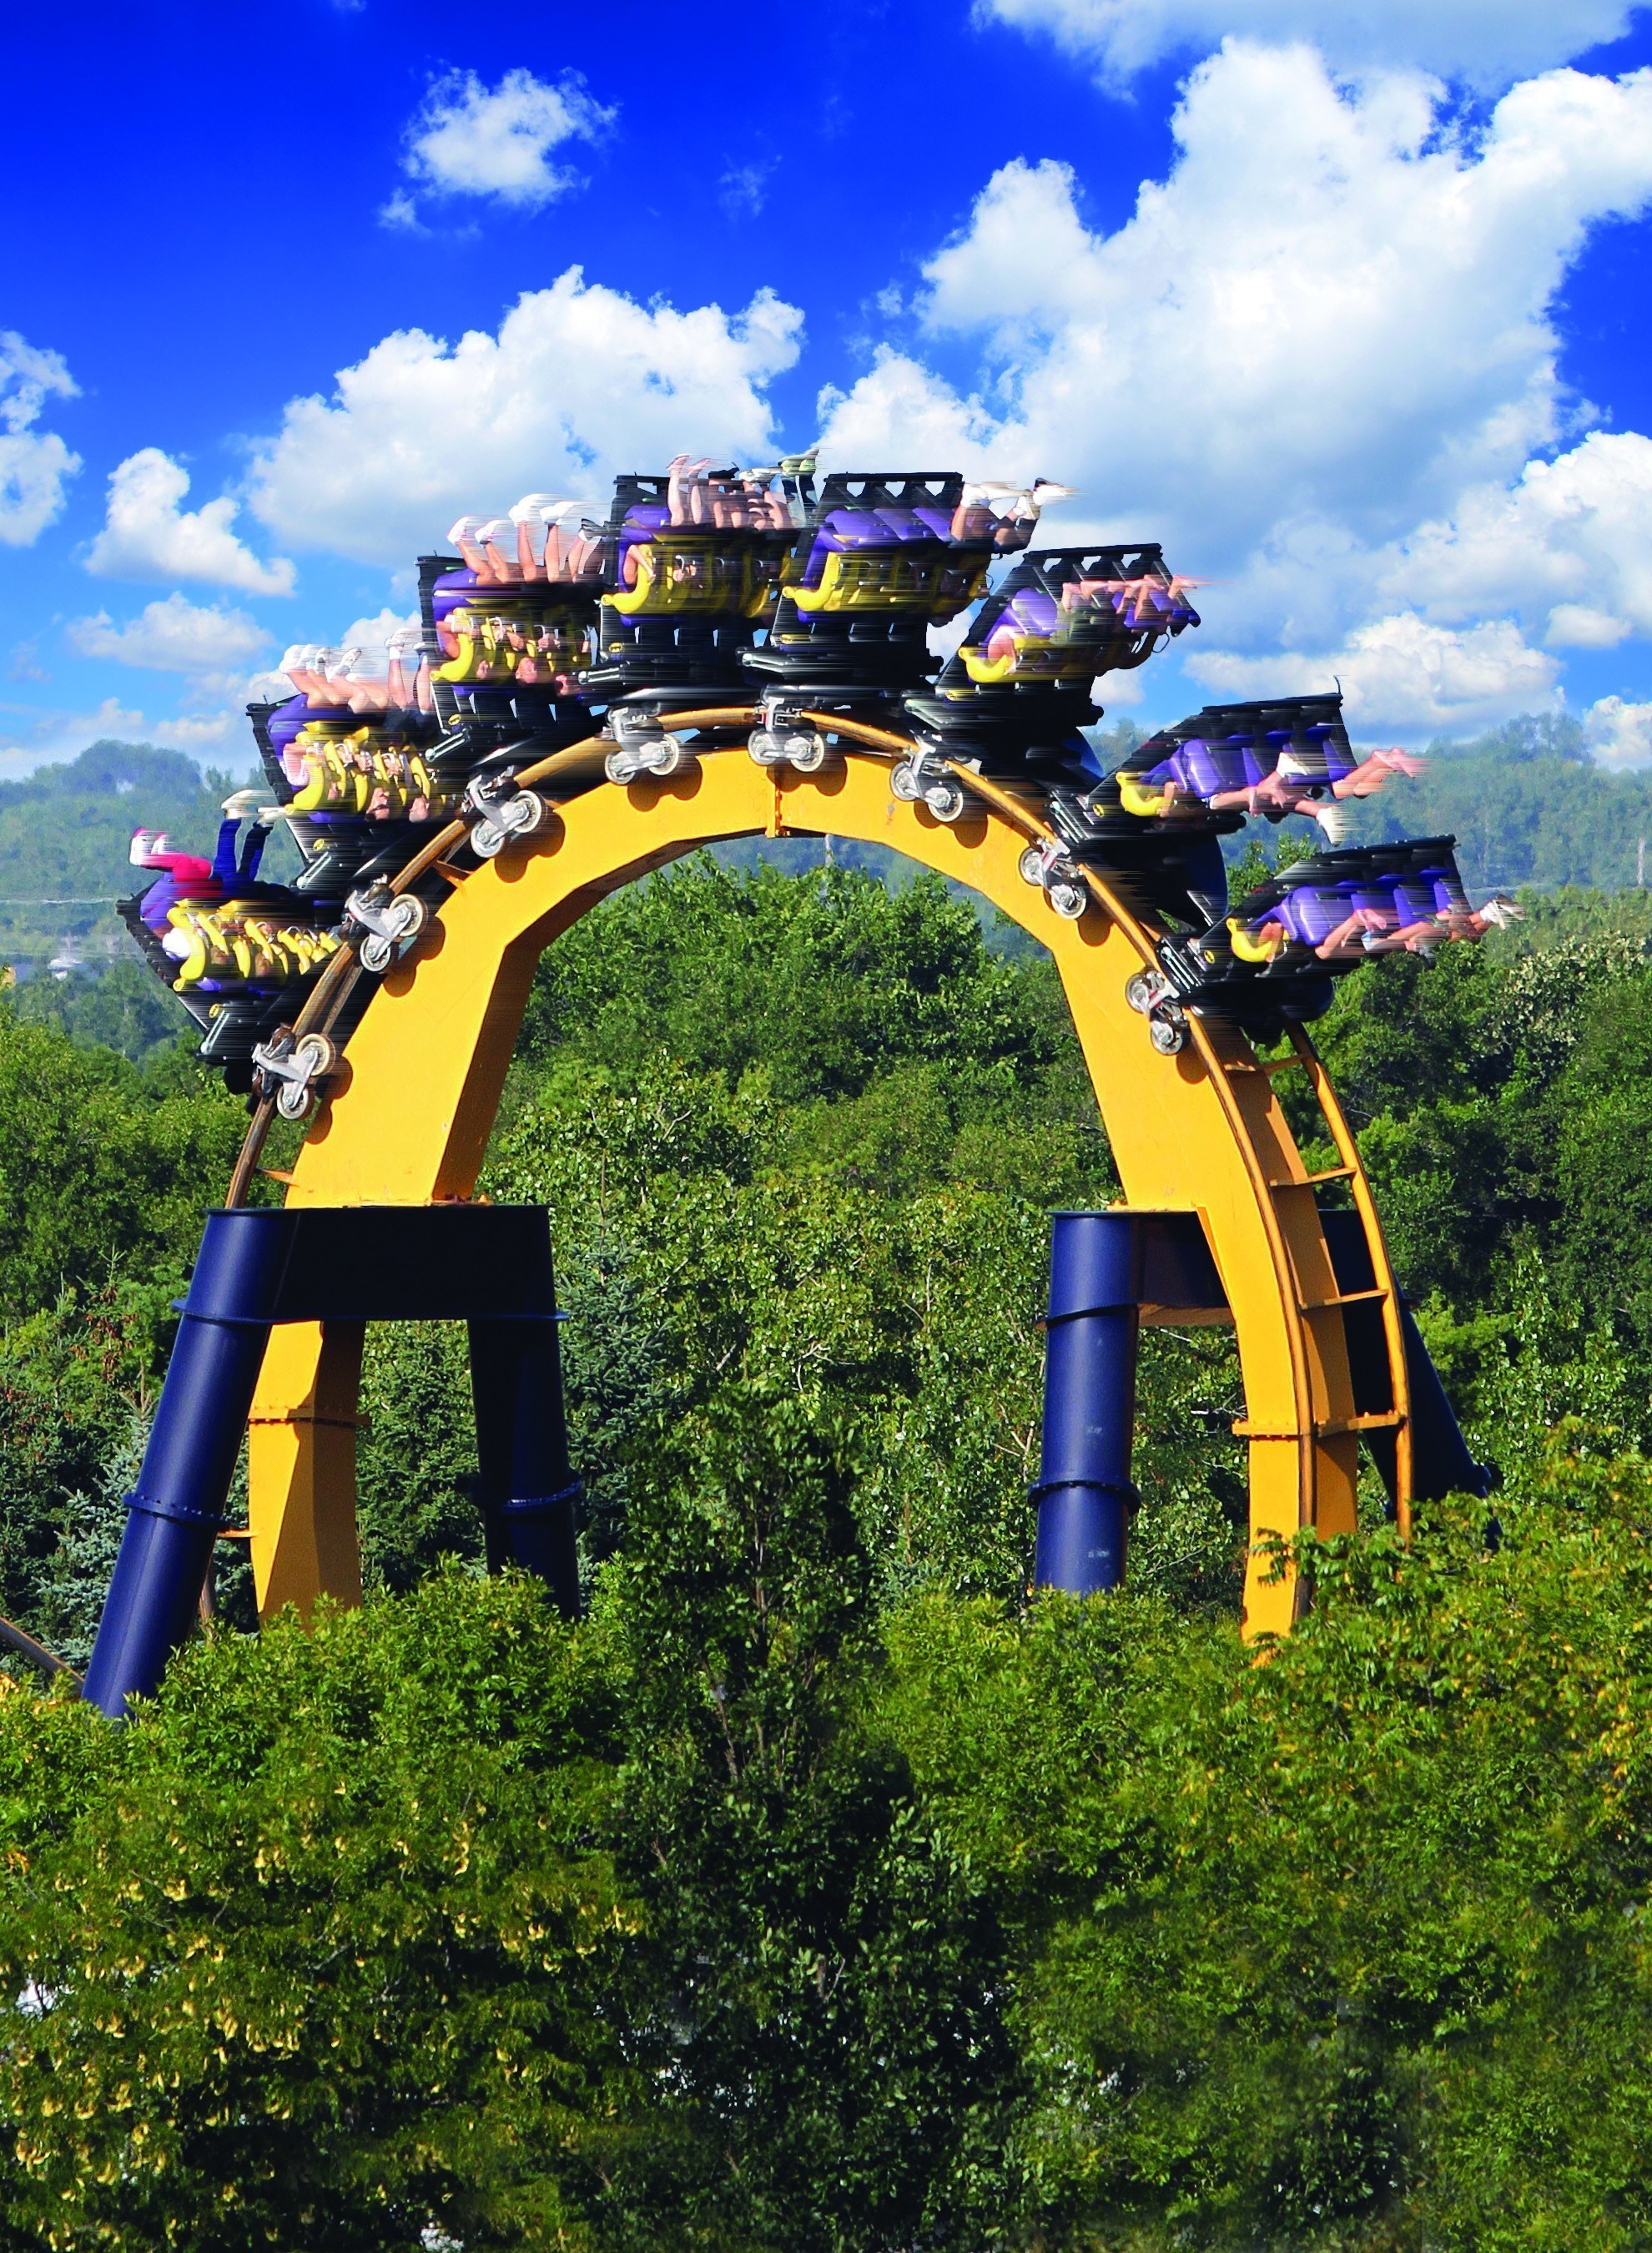 BATMAN(TM): The Ride backwards features five gut-wrenching inversions guests never see coming. The ride is available for a limited run this summer at Six Flags Great Adventure